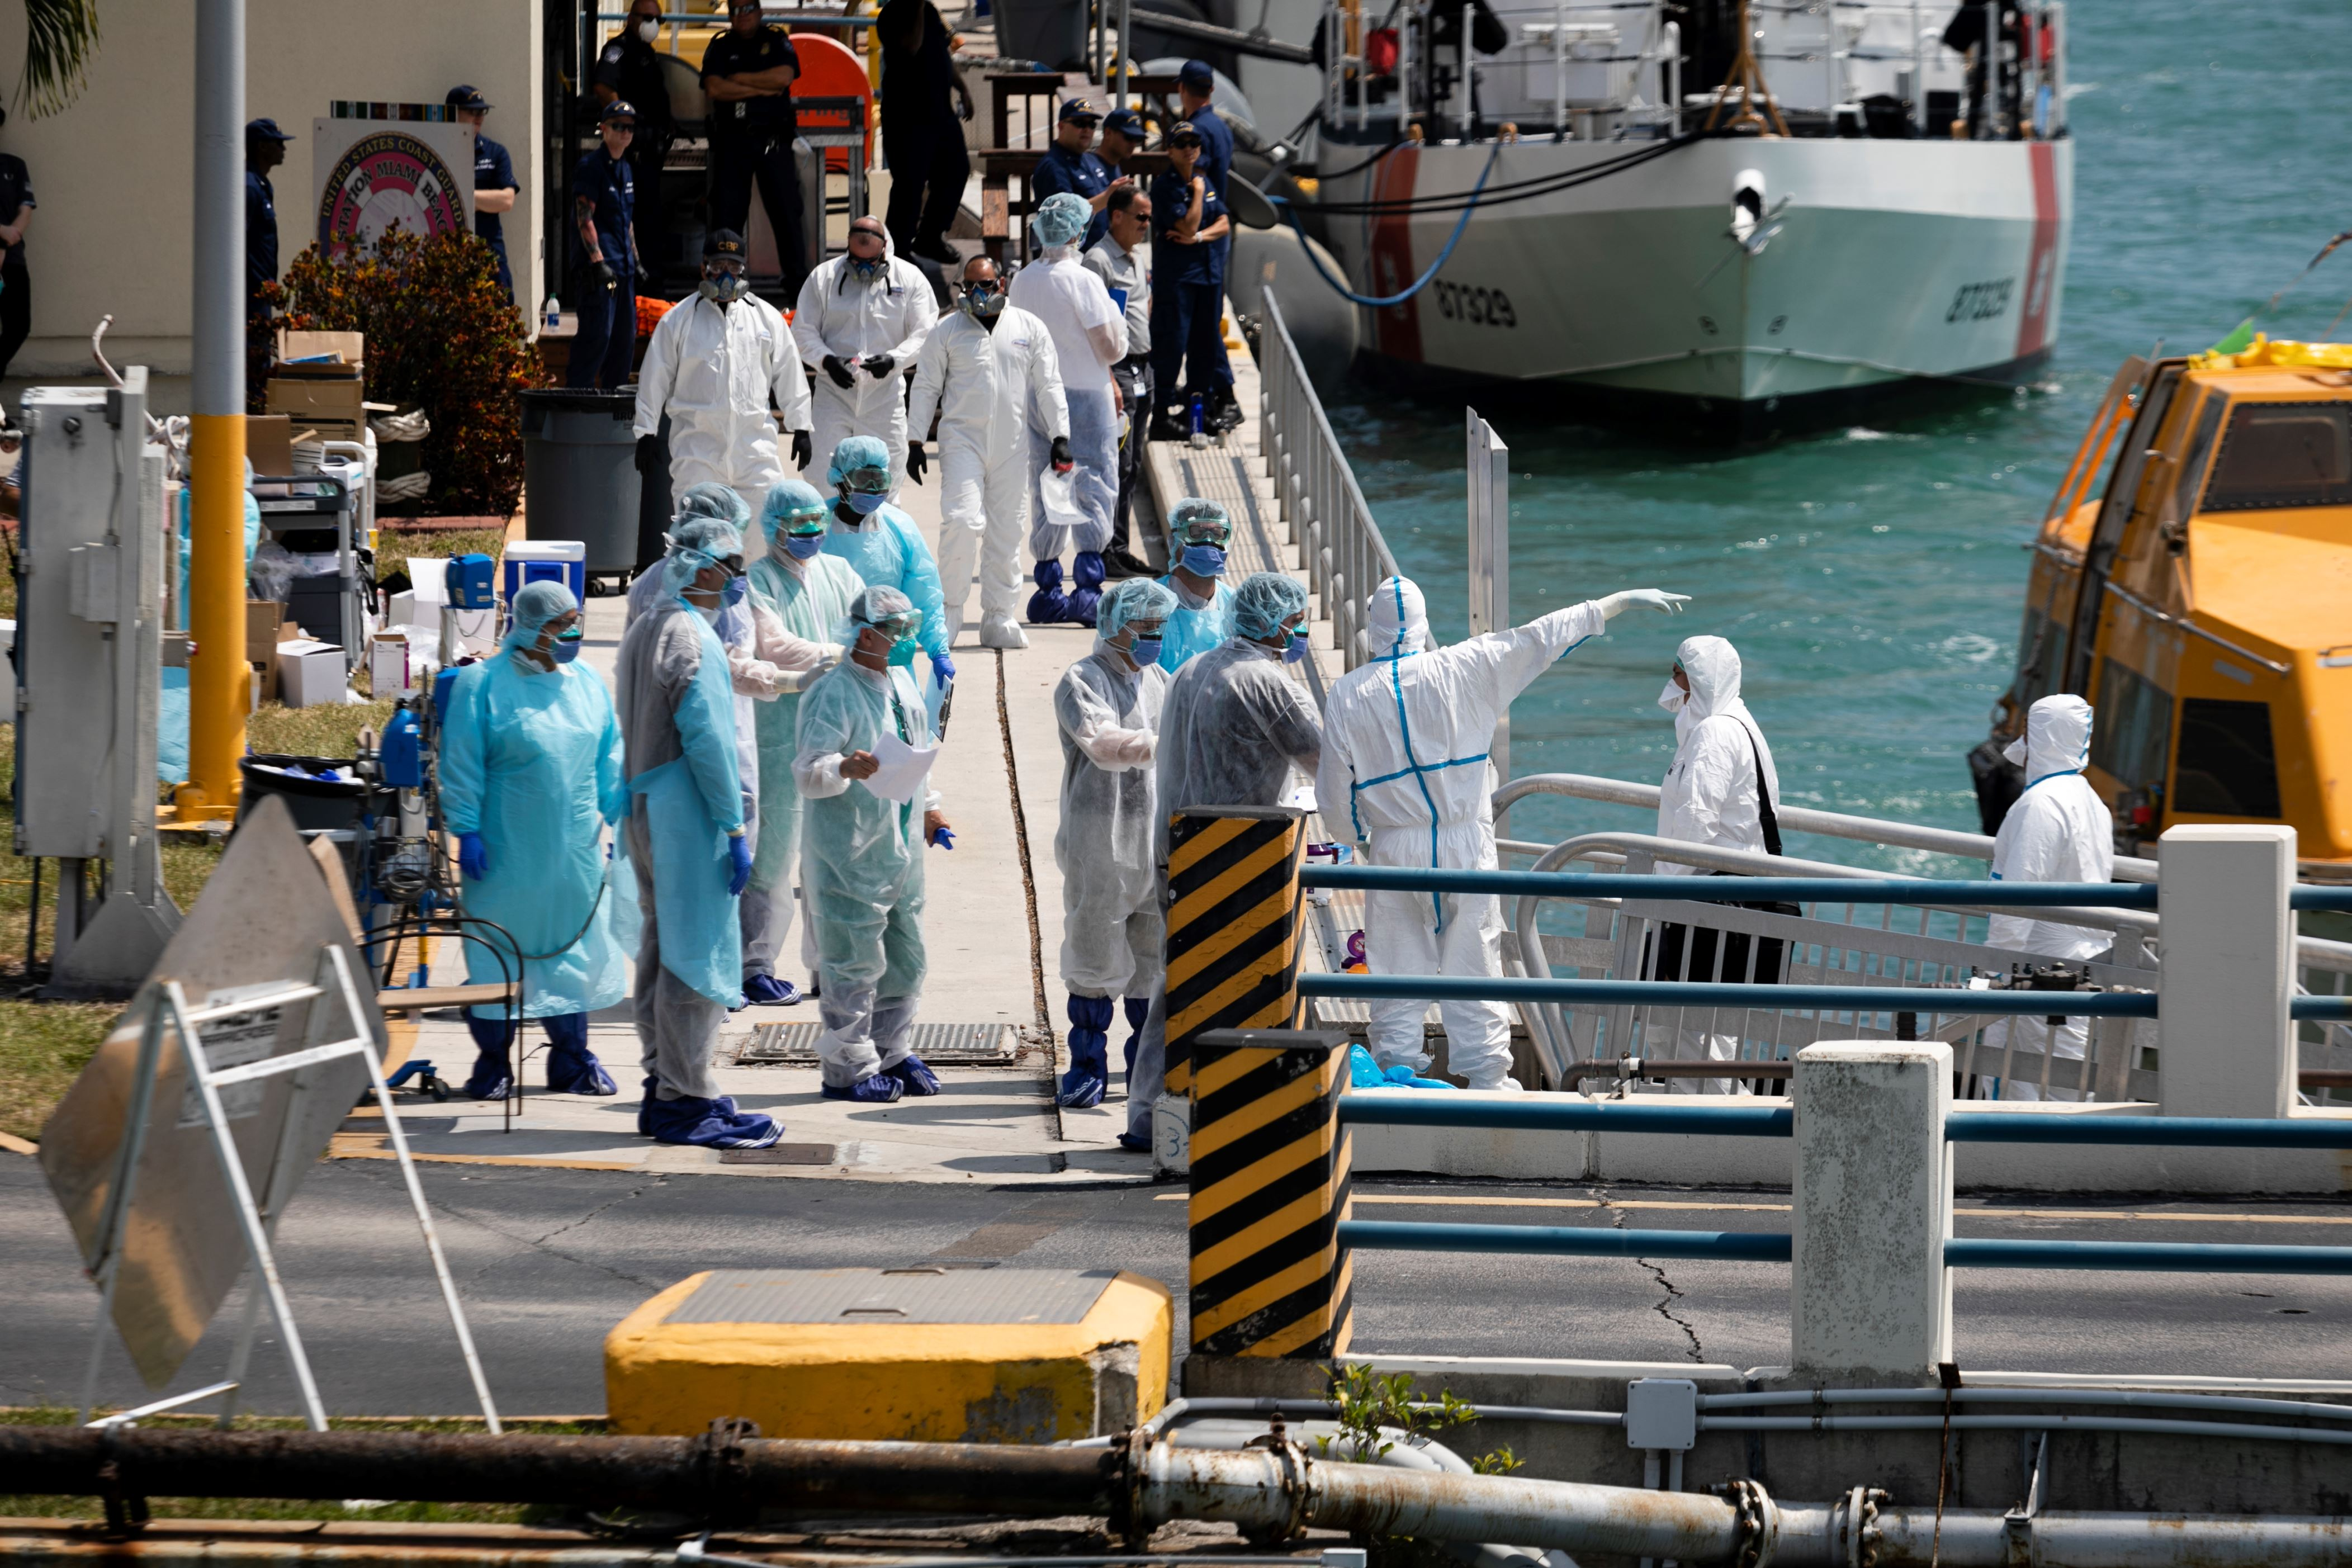 Medical staff receive suspected Coronovirus patients as they arrive at U.S. Coast Guard Base Miami Beach on March 26, 2020 in Miami, Florida. According to reports, two Costa Cruises ships, the Favolosa and the Magica, are anchored off the coast of Miami with approximately 30 people experiencing flu-like symptoms of COVID-19.